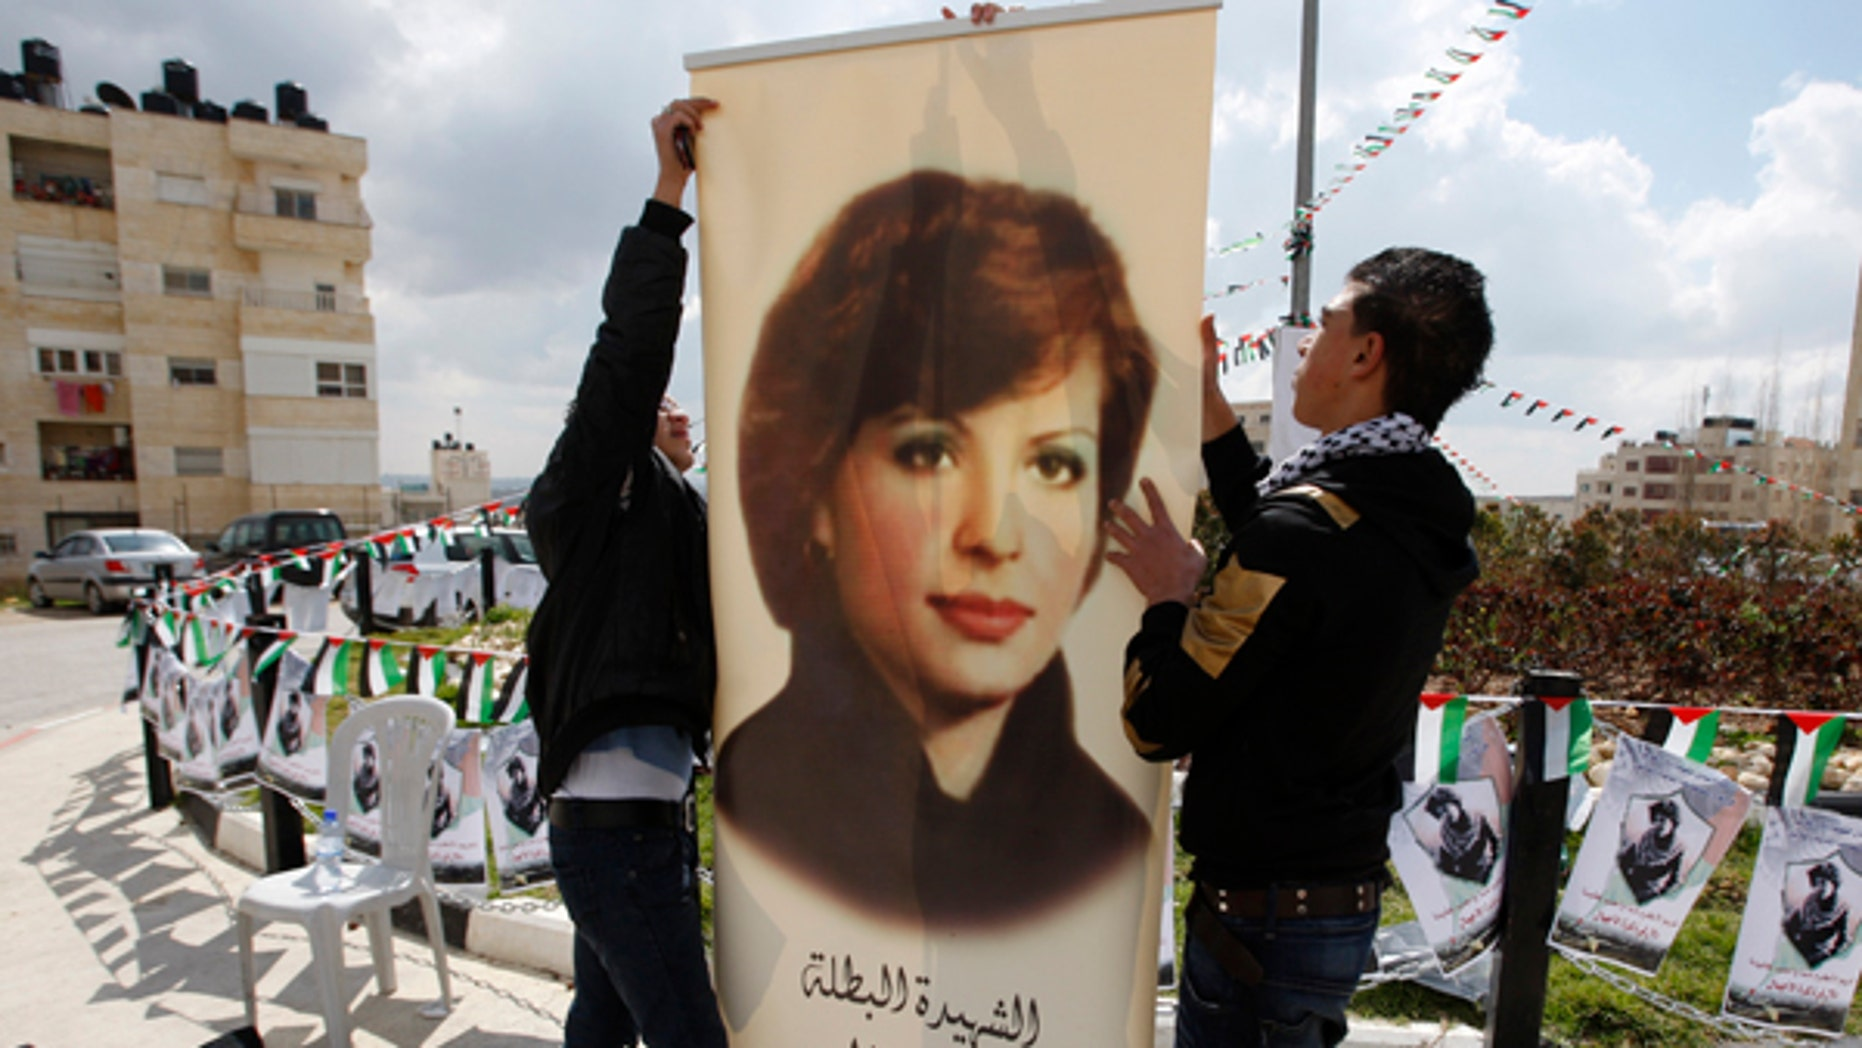 Palestinians in the West Bank town of Al-Bireh decorate a town square with a poster depicting Dalal Mughrabi. The United Nations and Norway have recently taken issue with a women's center being named after the terrorist responsible for one of the largest terror attacks in Israel's history.